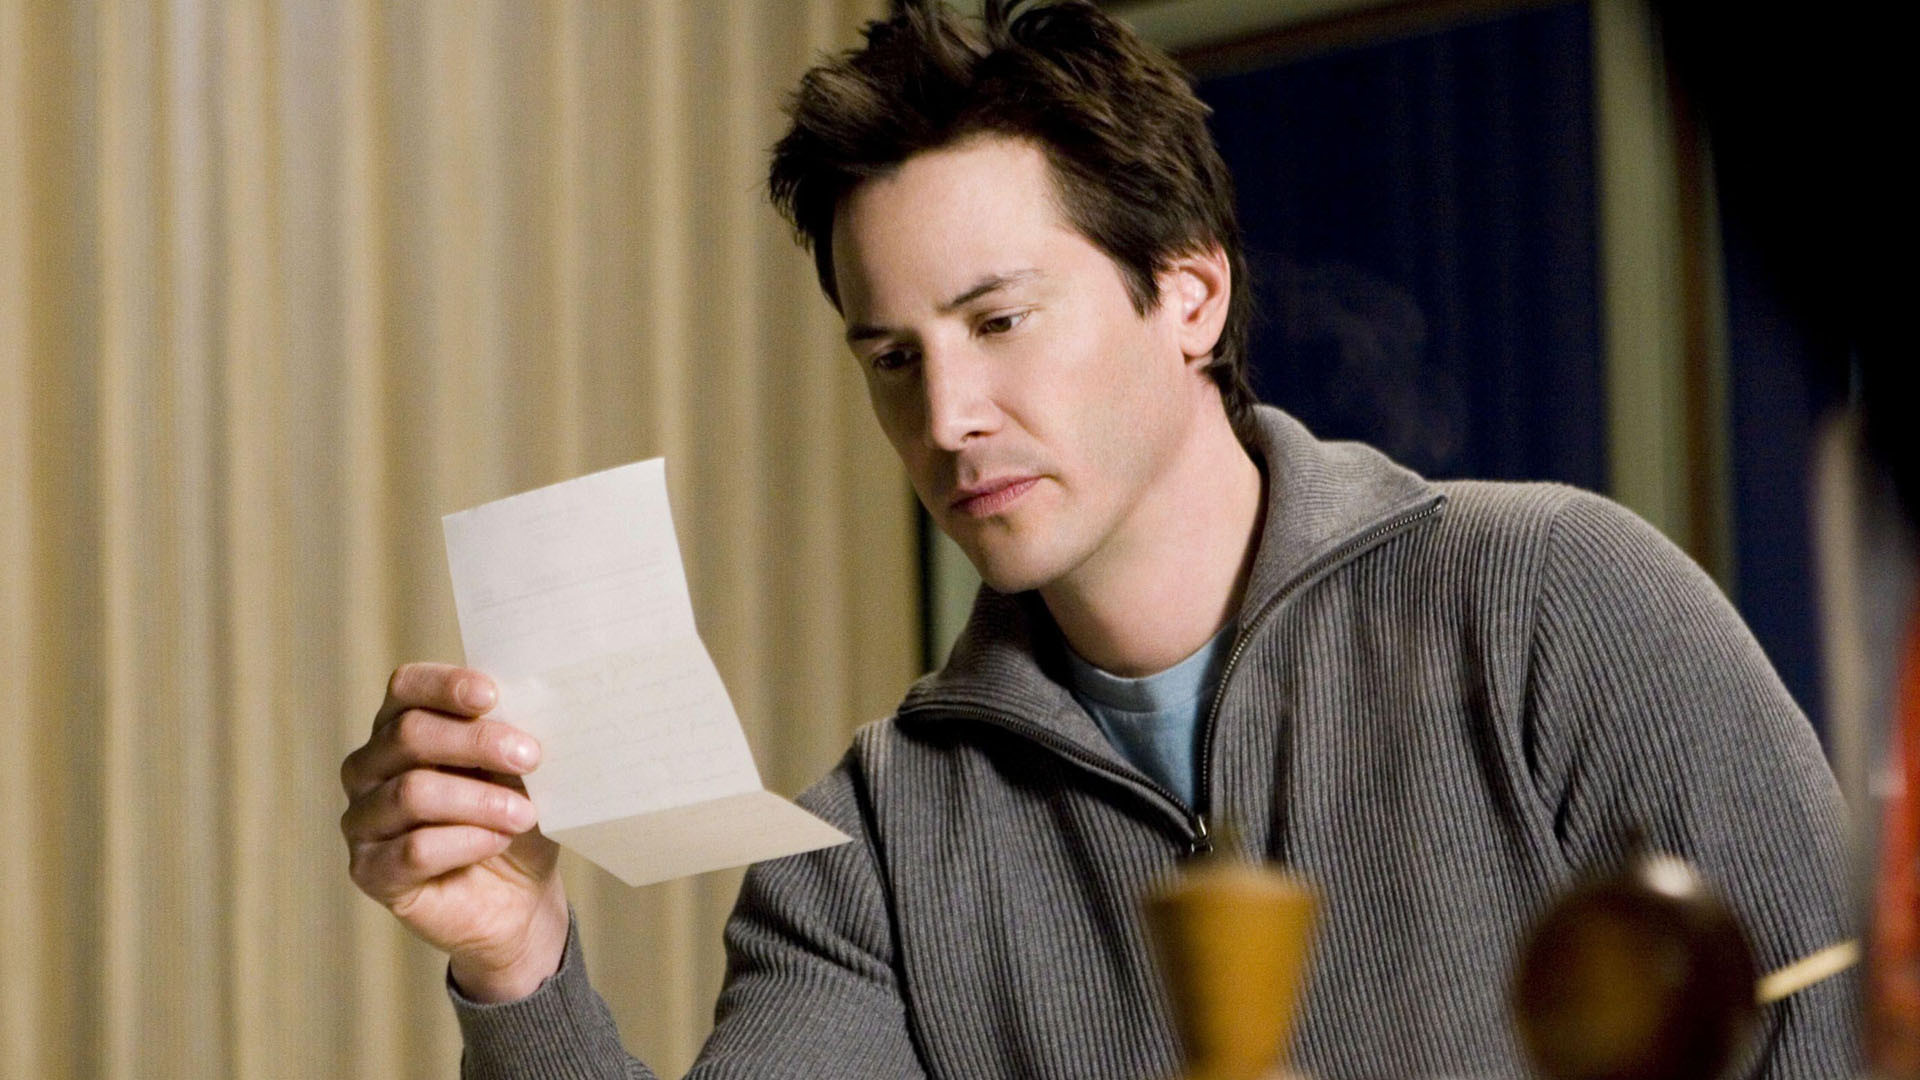 Keanu Reeves receives letters sent across time in The Lake House (2006)